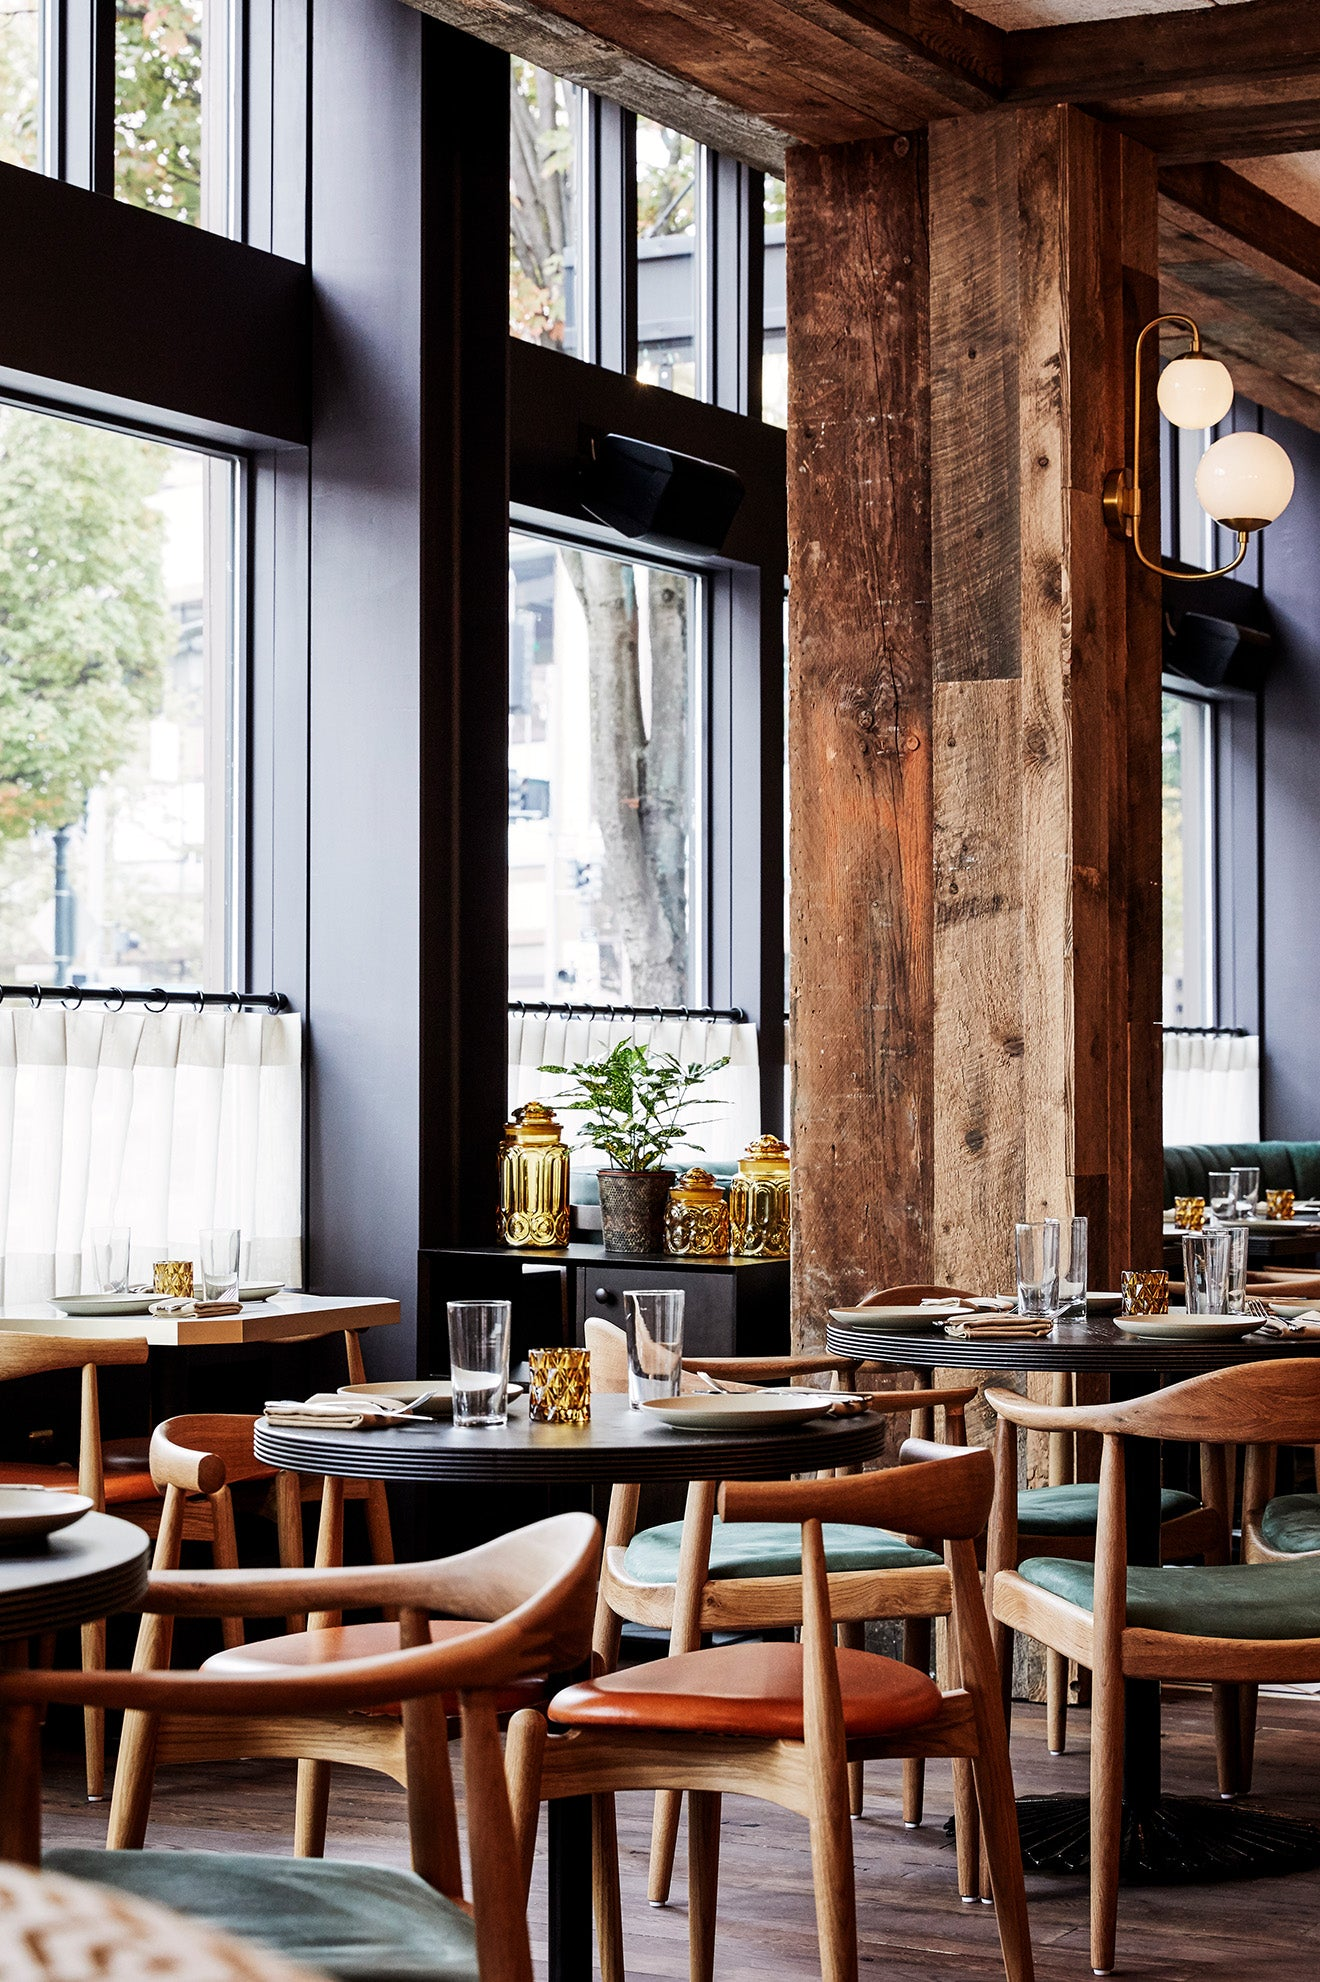 The Hoxton Hotel Portland Restaurant designed by Fettle